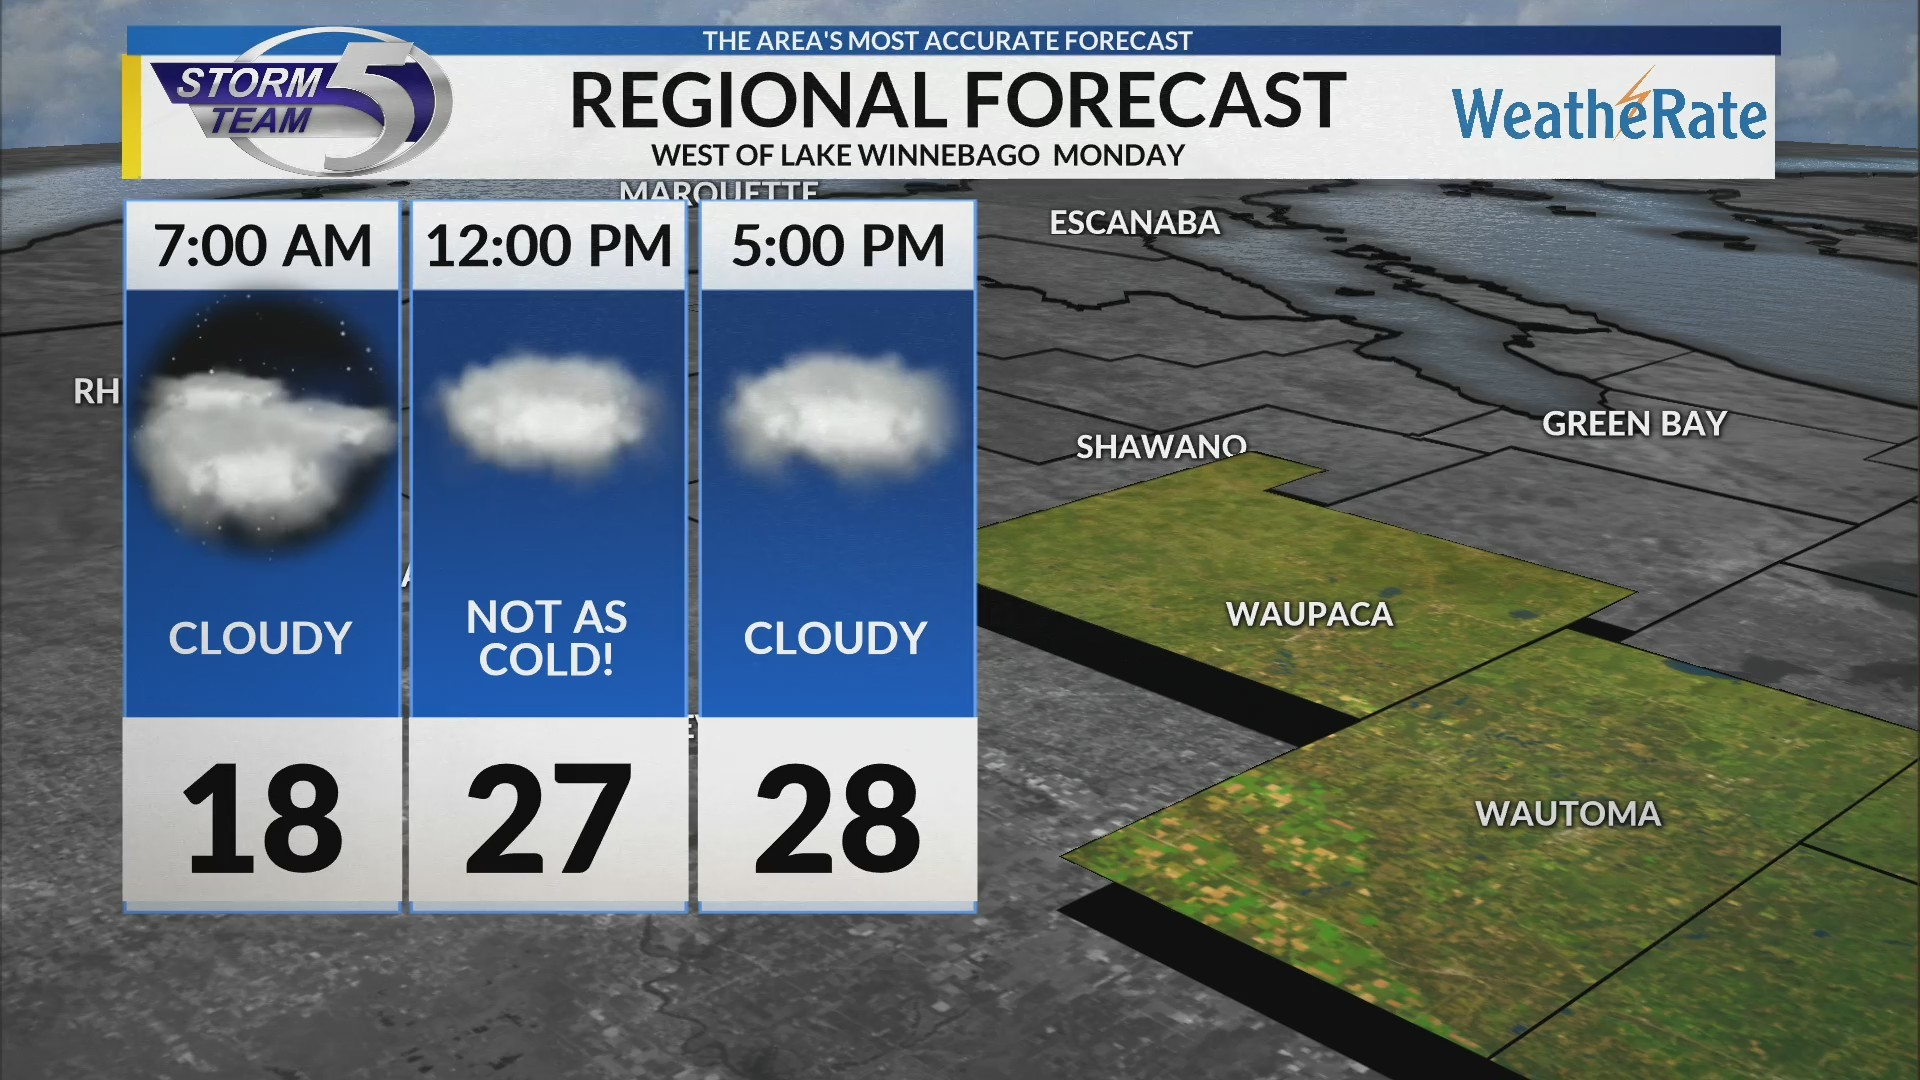 Regional Forecast: West of Lake Winnebago 2-11